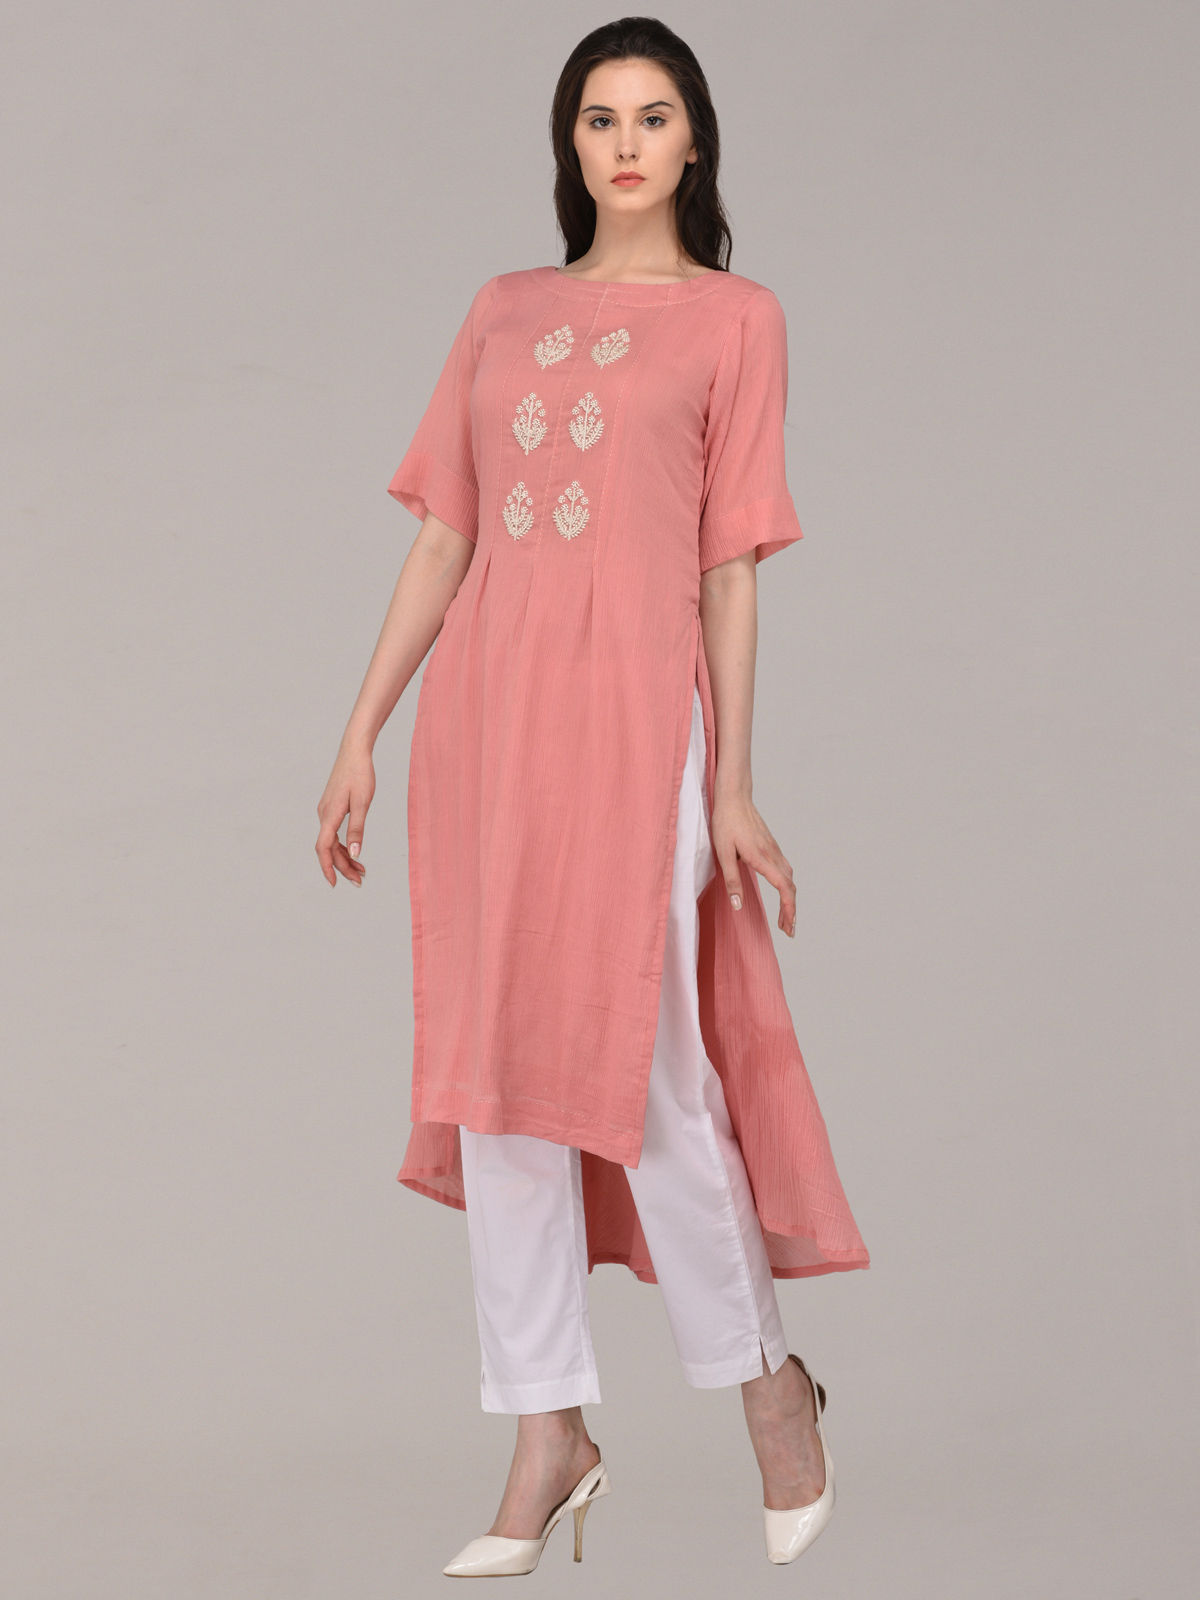 Panachee hand embroidered pink pure cotton kurti